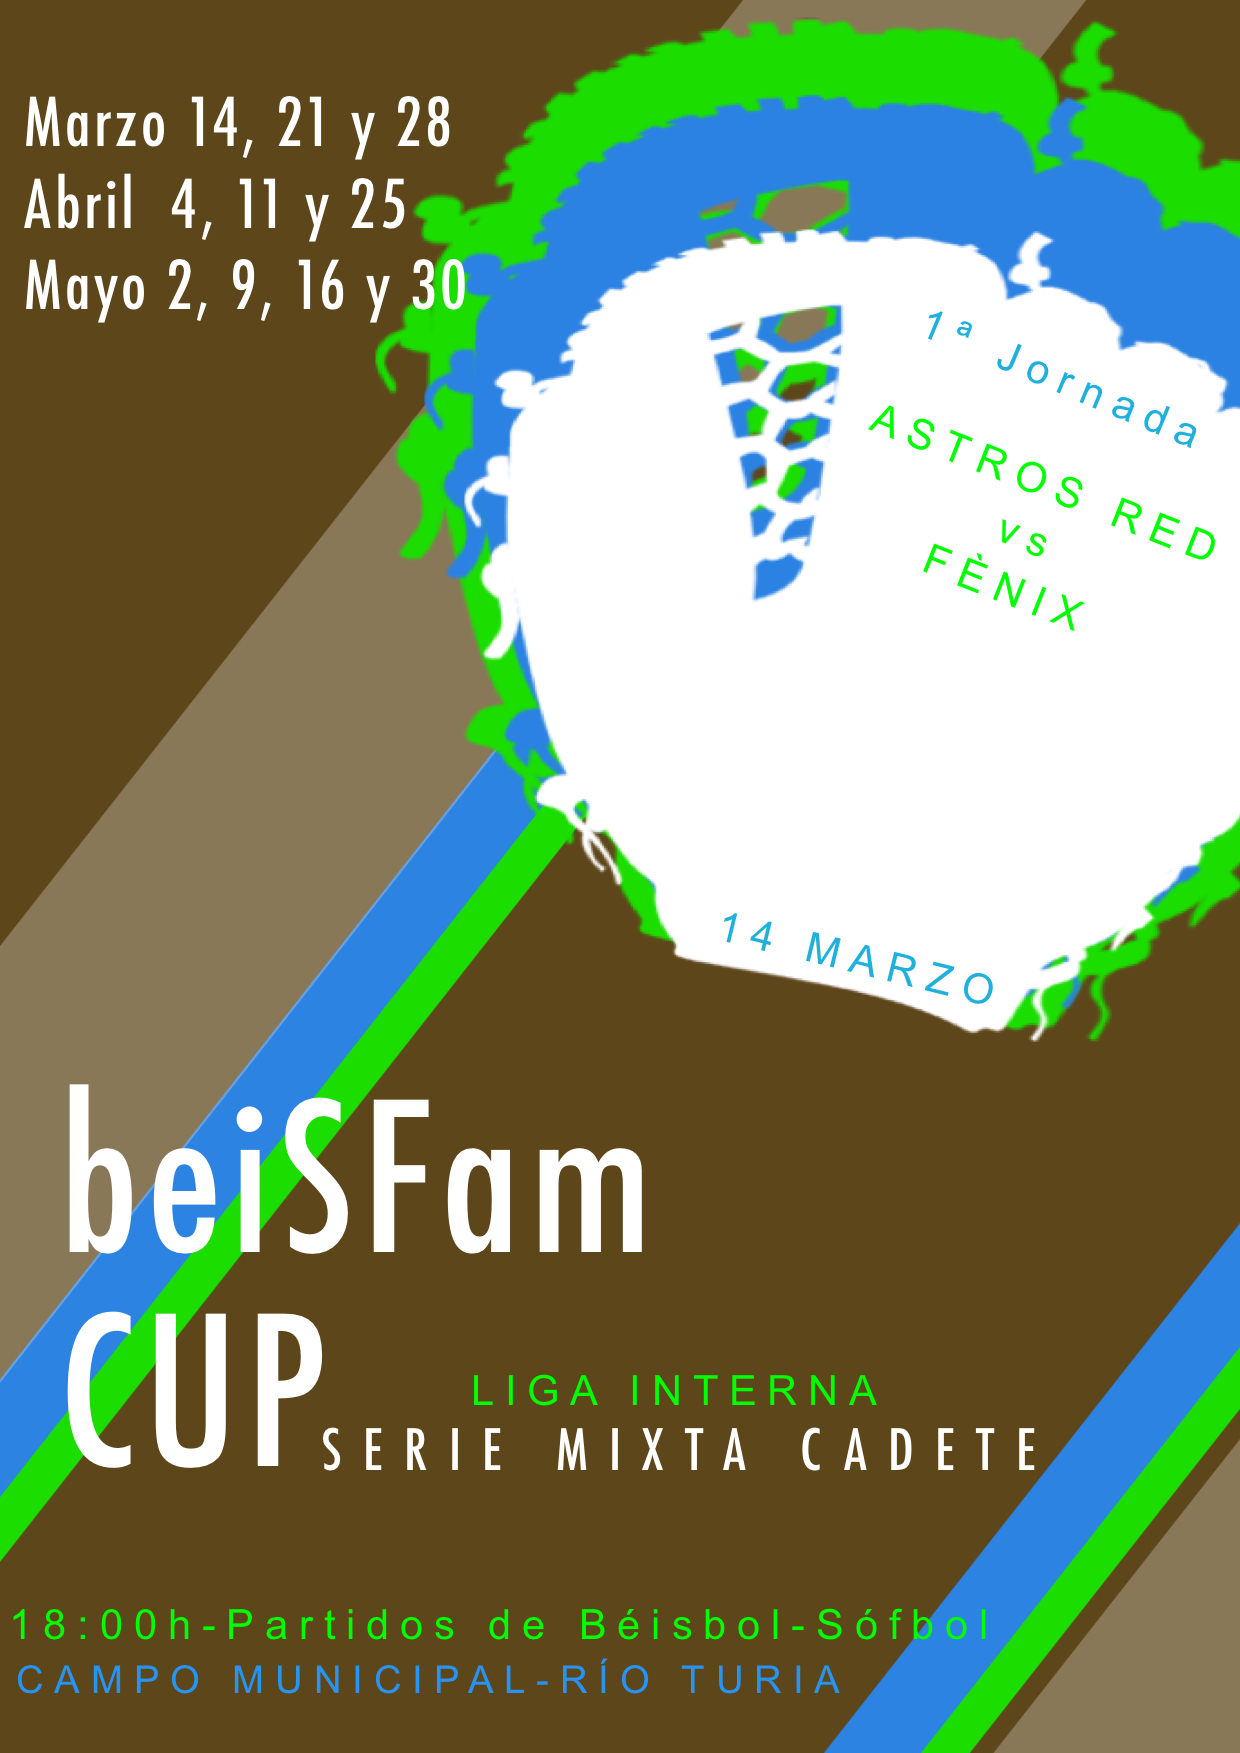 Fenix Valencia- beisfam CUP 2014